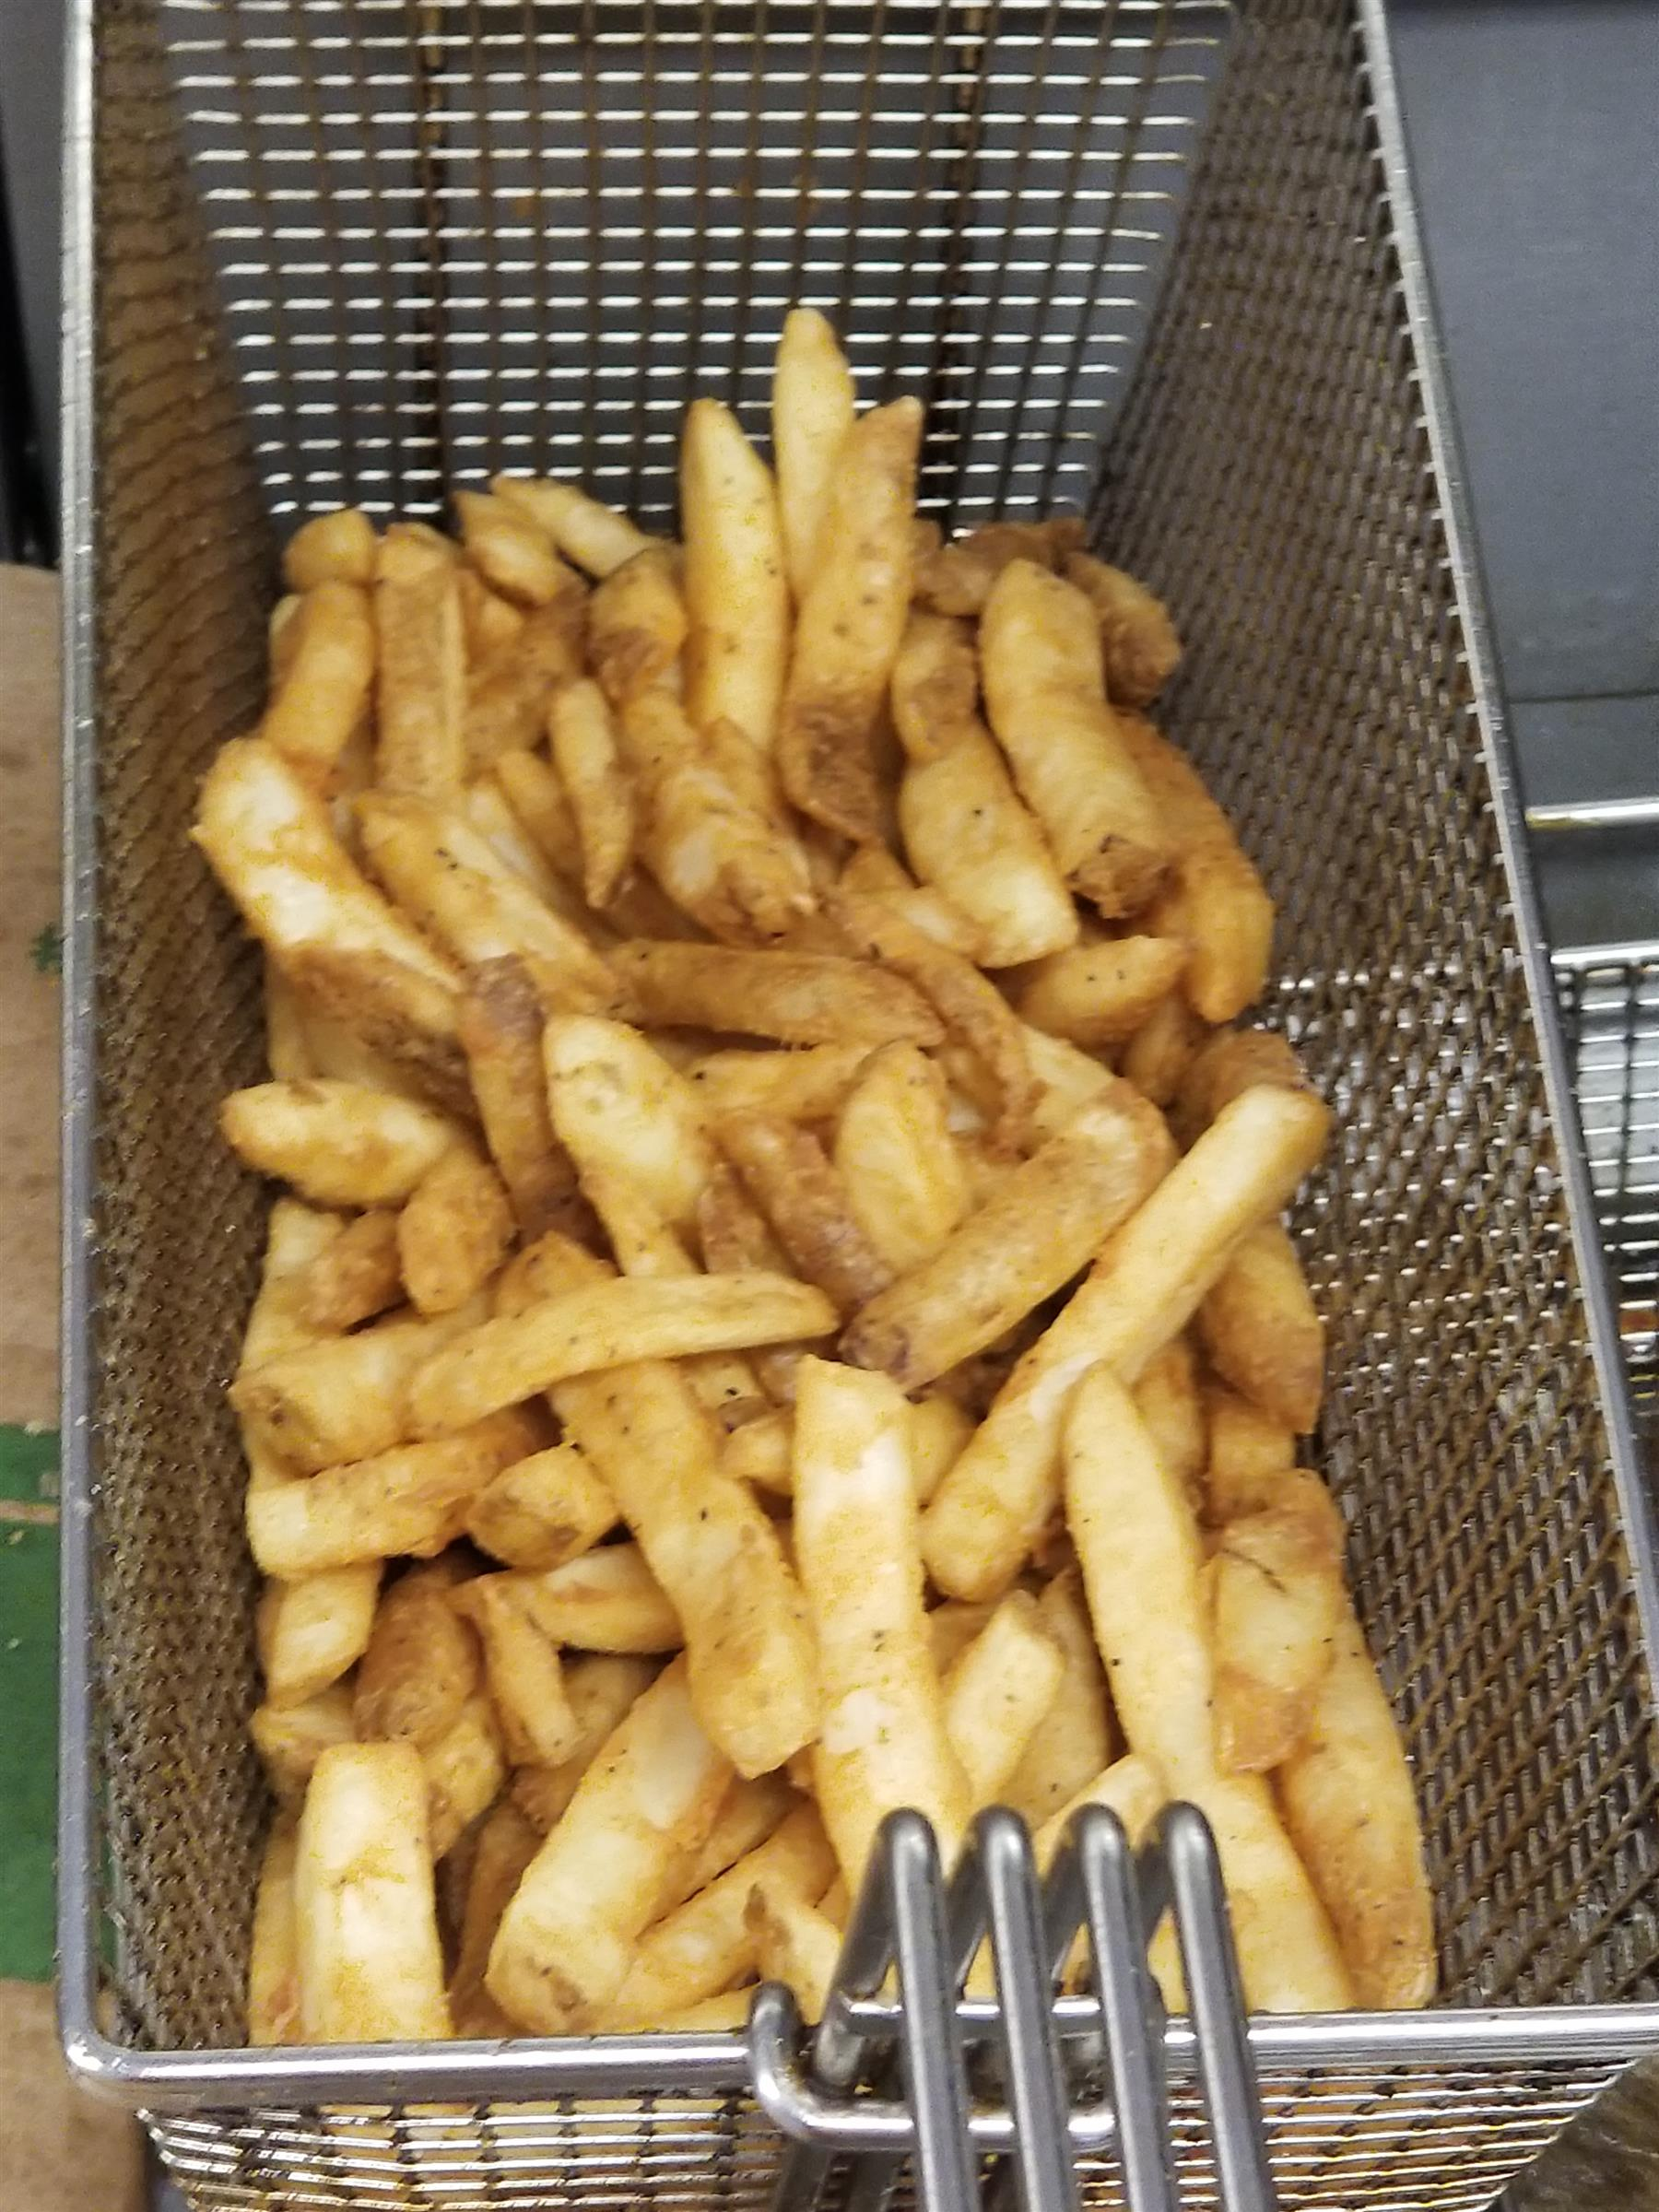 Fries in deep fryer basket